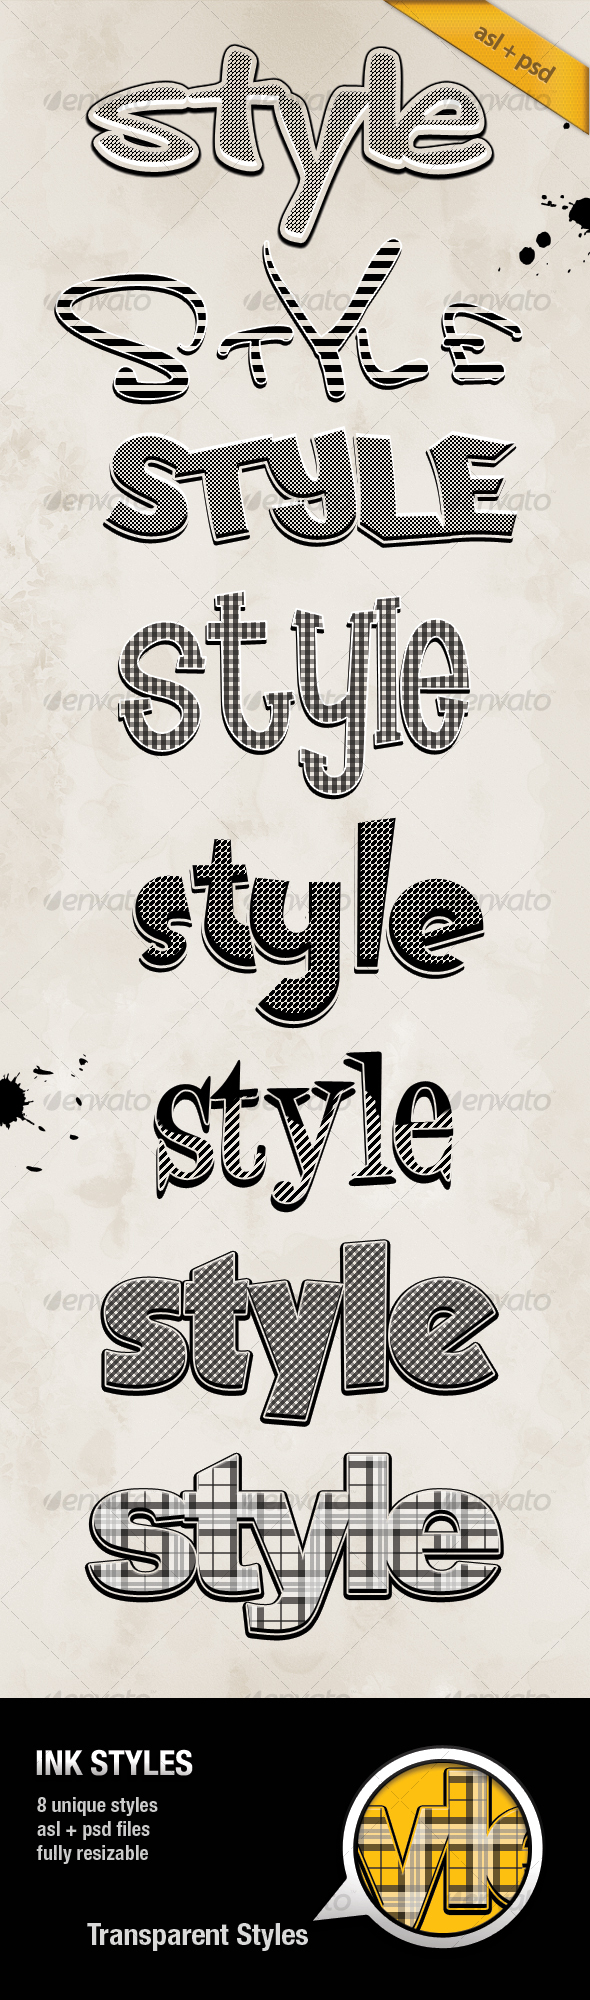 GraphicRiver INK Styles 110701